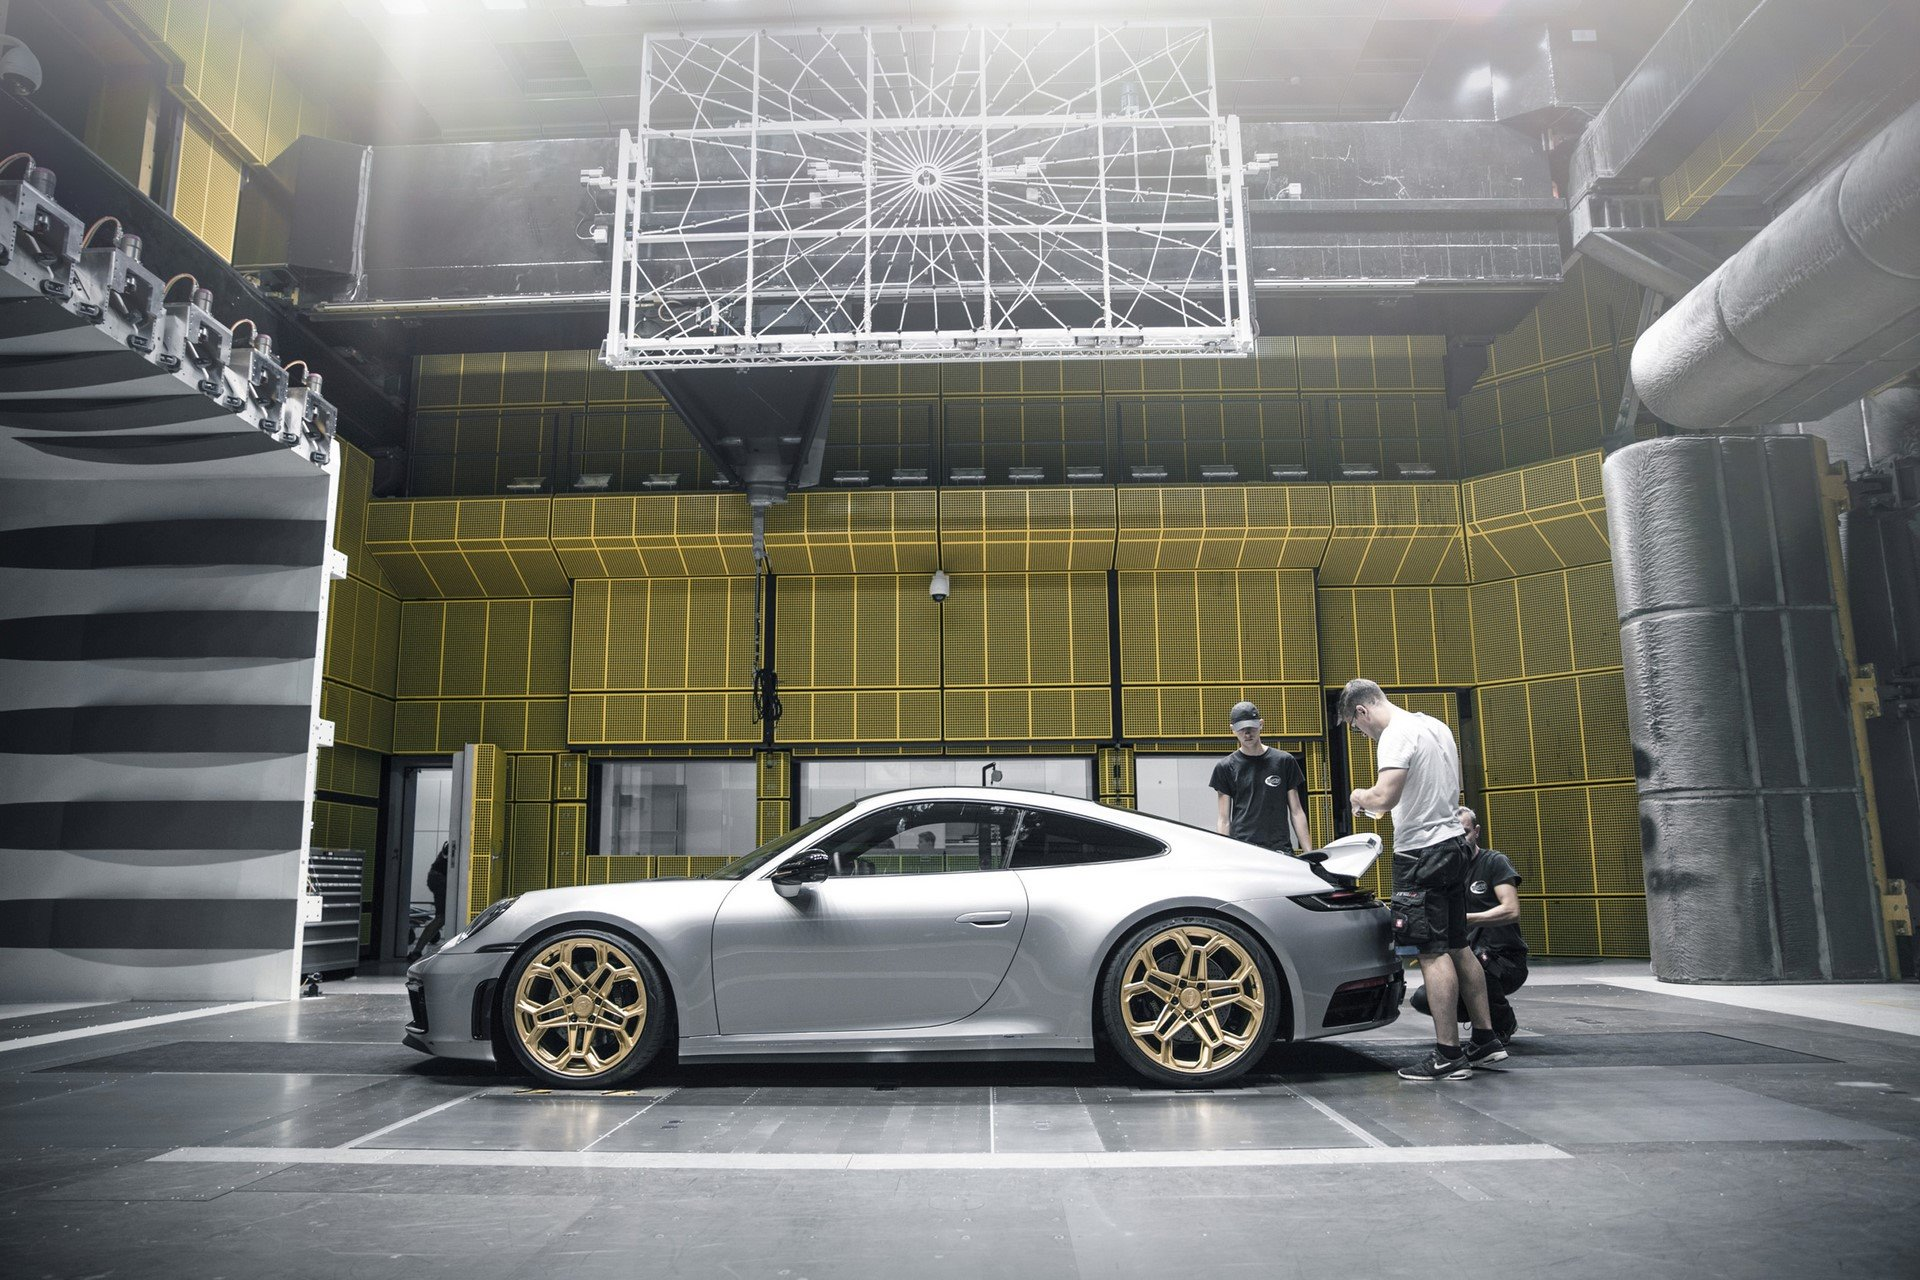 Porsche-911-Carrera-4S-by-TechArt-55